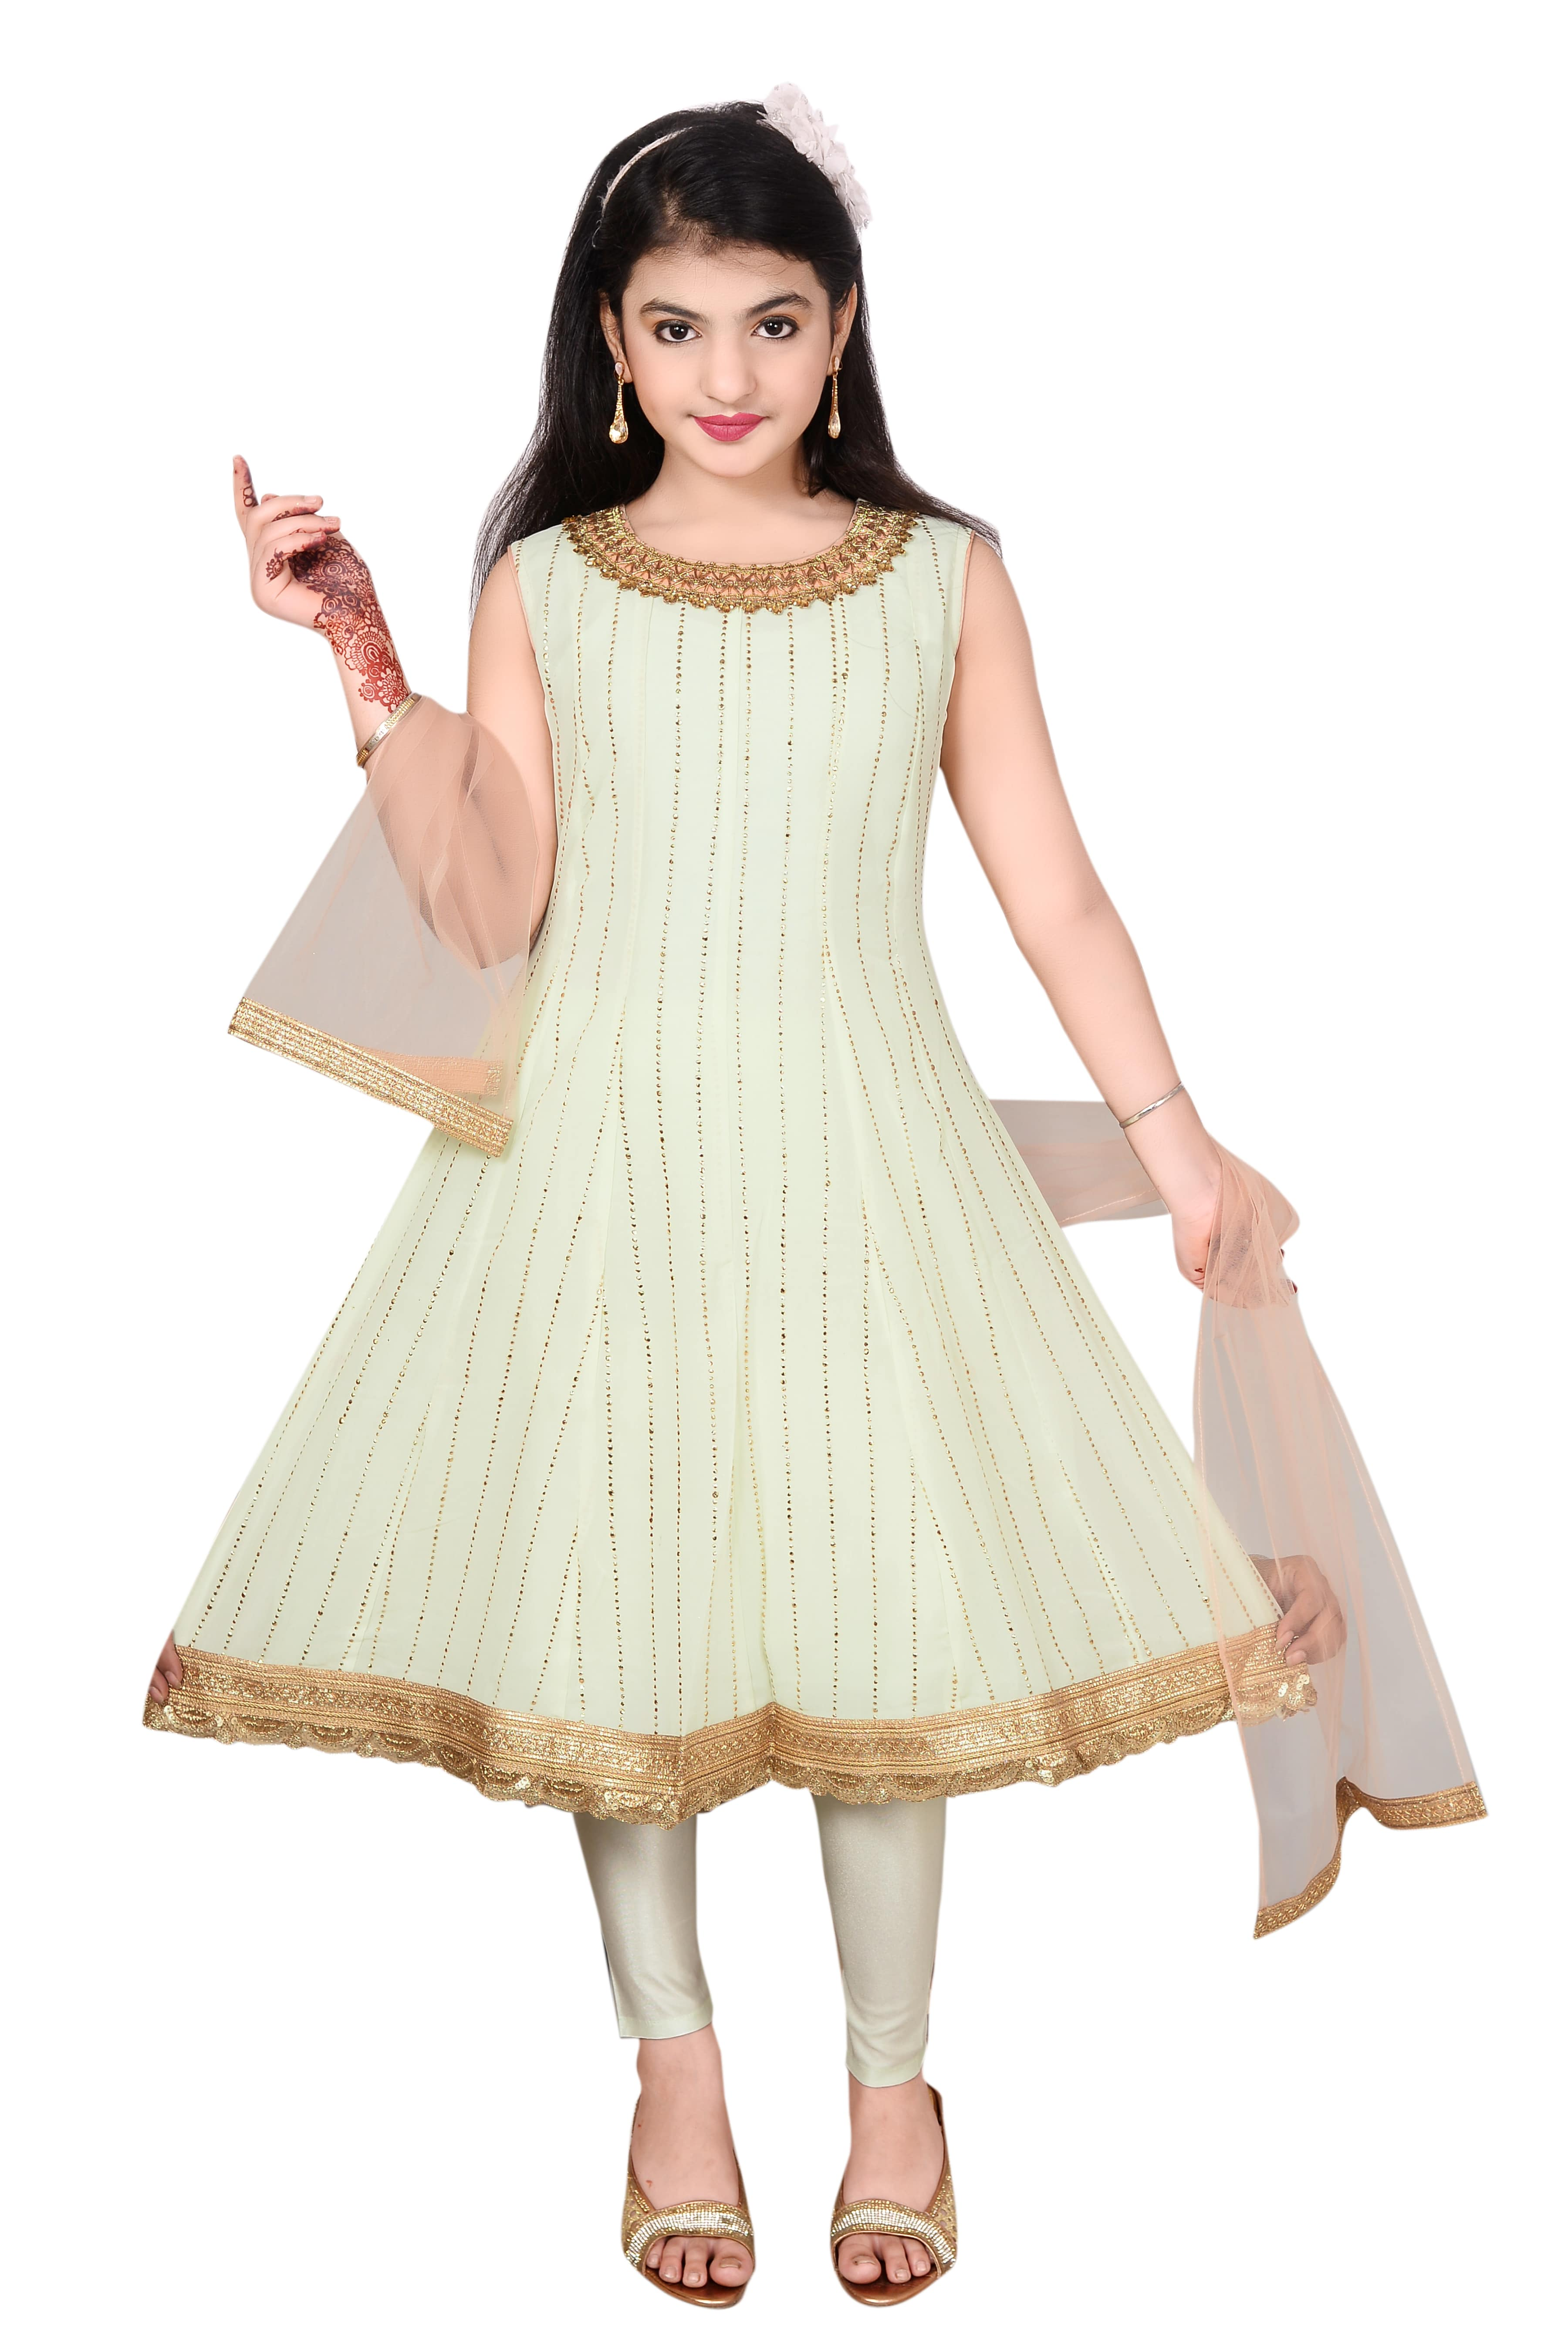 Kids Ethnic Wear In Bhubaneswar